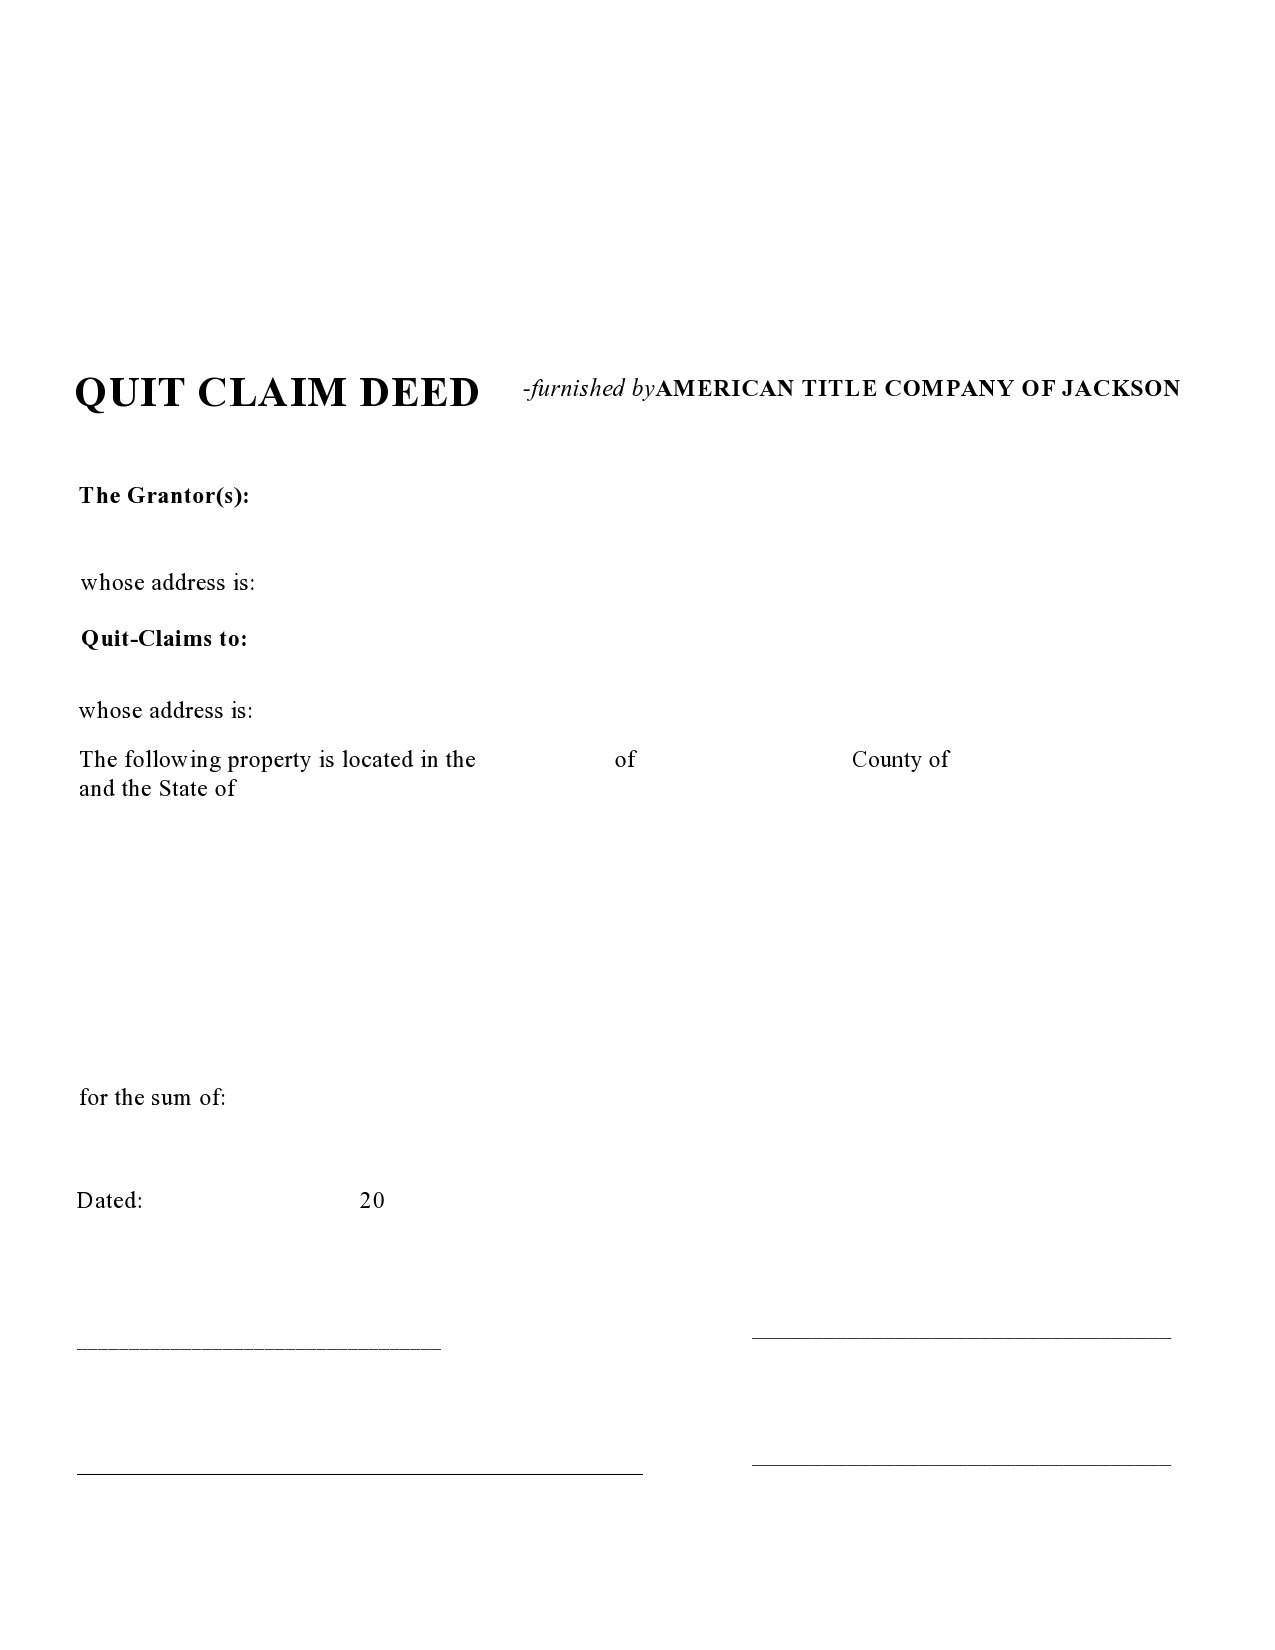 Free quit claim deed form 07